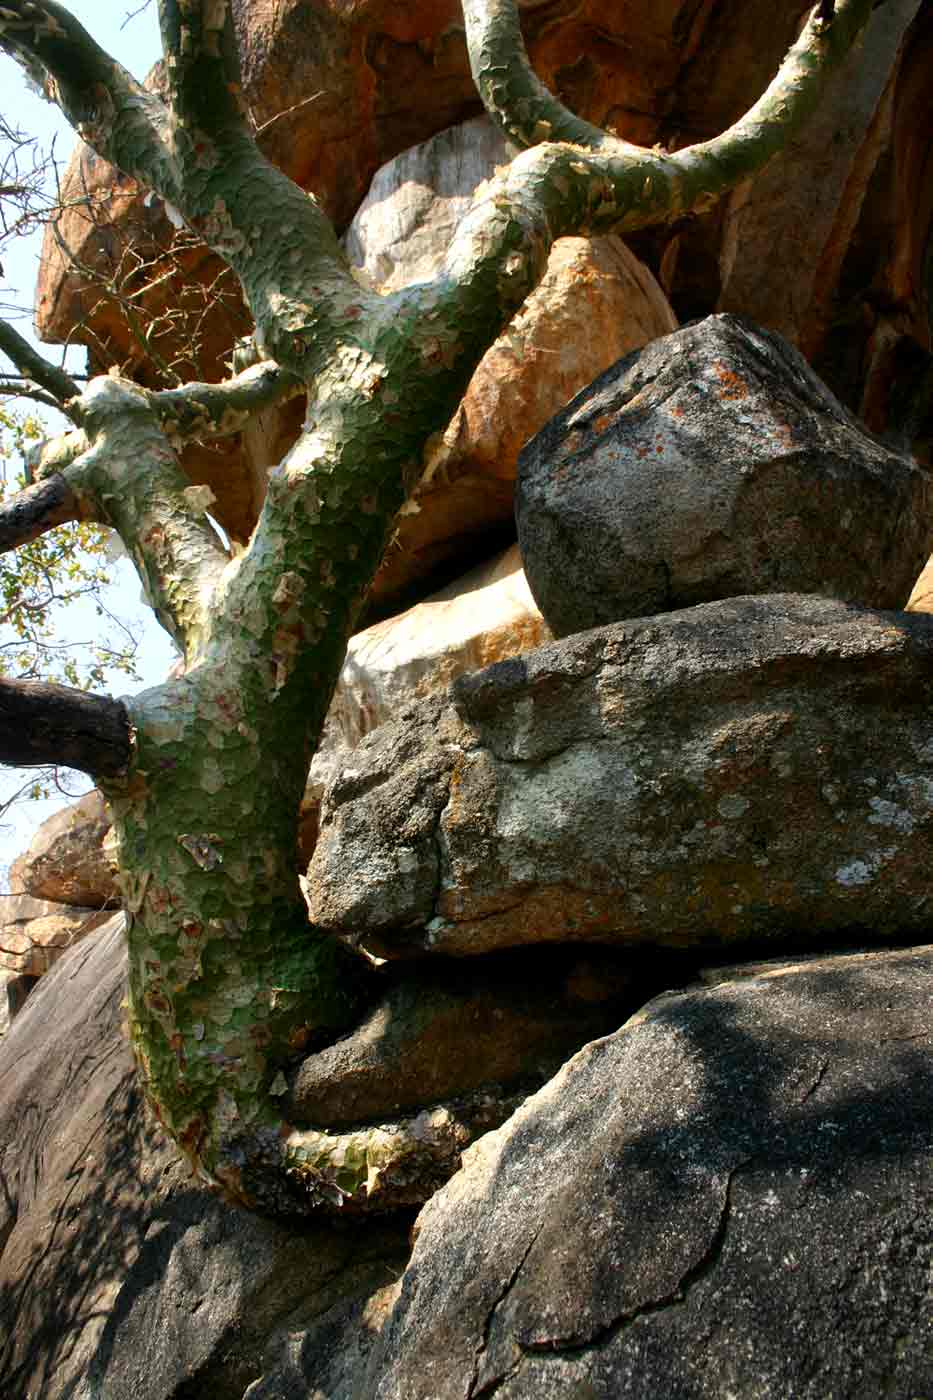 Commiphora marlothii growing in a rocky place.